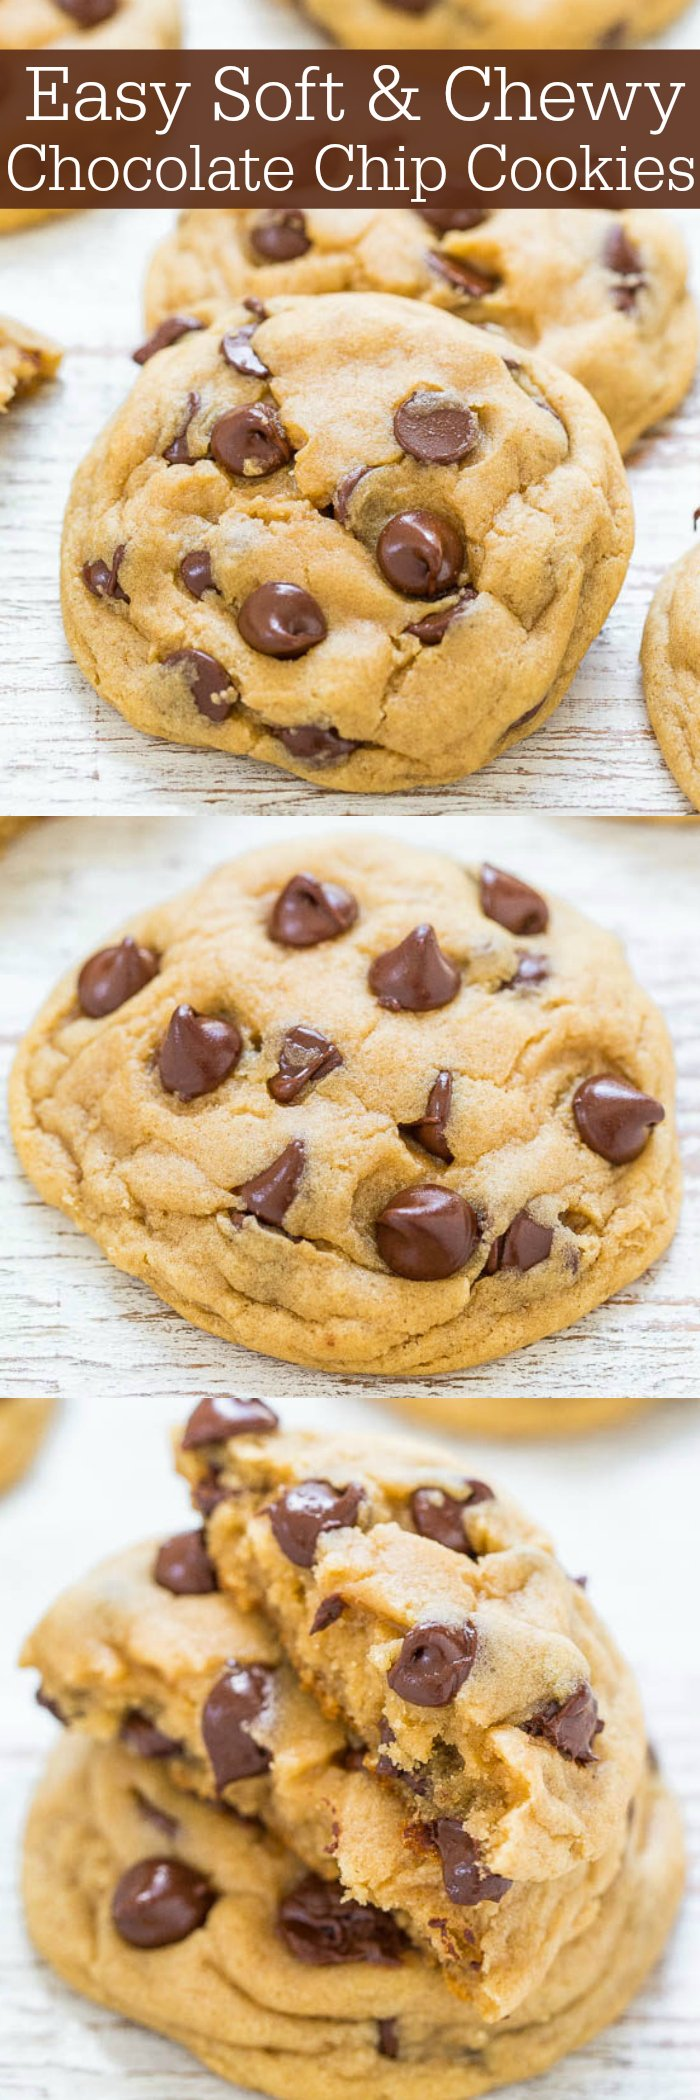 These soft chocolate chip cookies are studded with chocolate chips! My secret ingredient? Cornstarch! It produces the most incredible cookies, trust me. #cookies #cookierecipe #chocolatechip